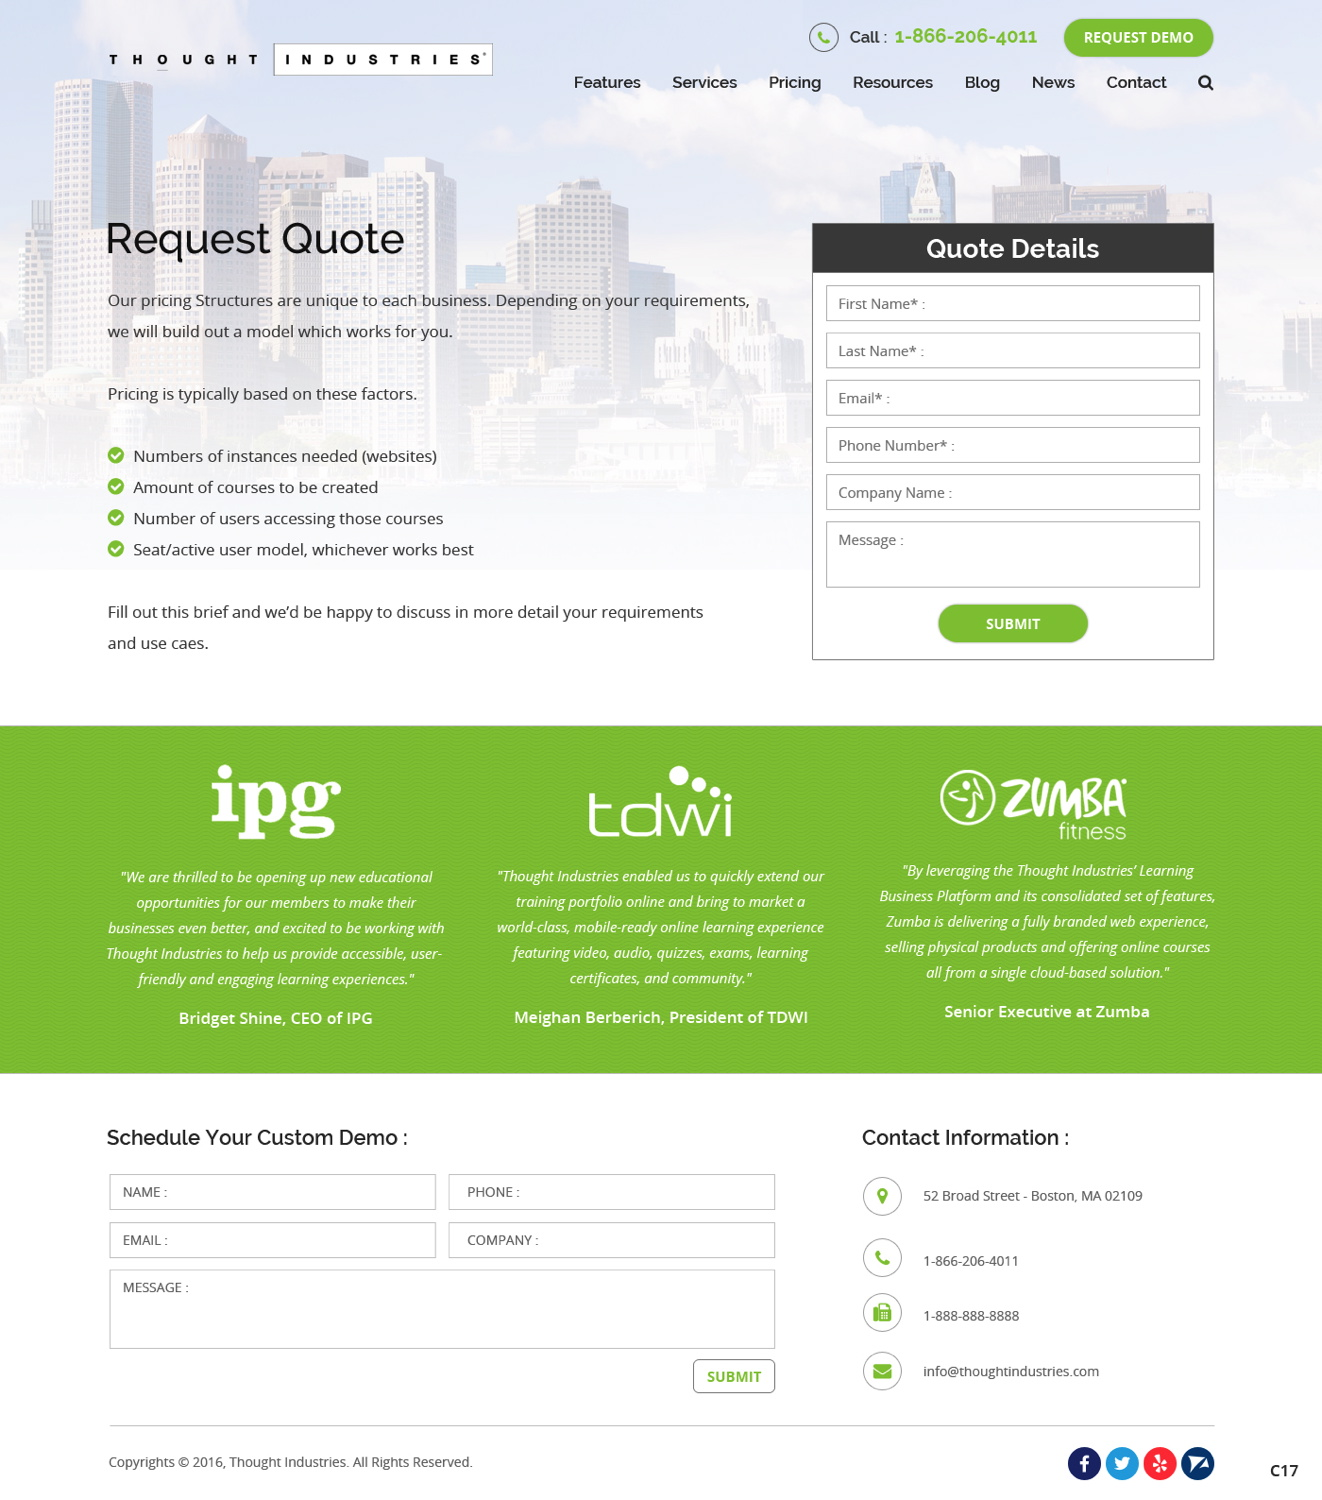 Modern Serious Pricing Web Design For Thought Industries By Pb Design 13041510